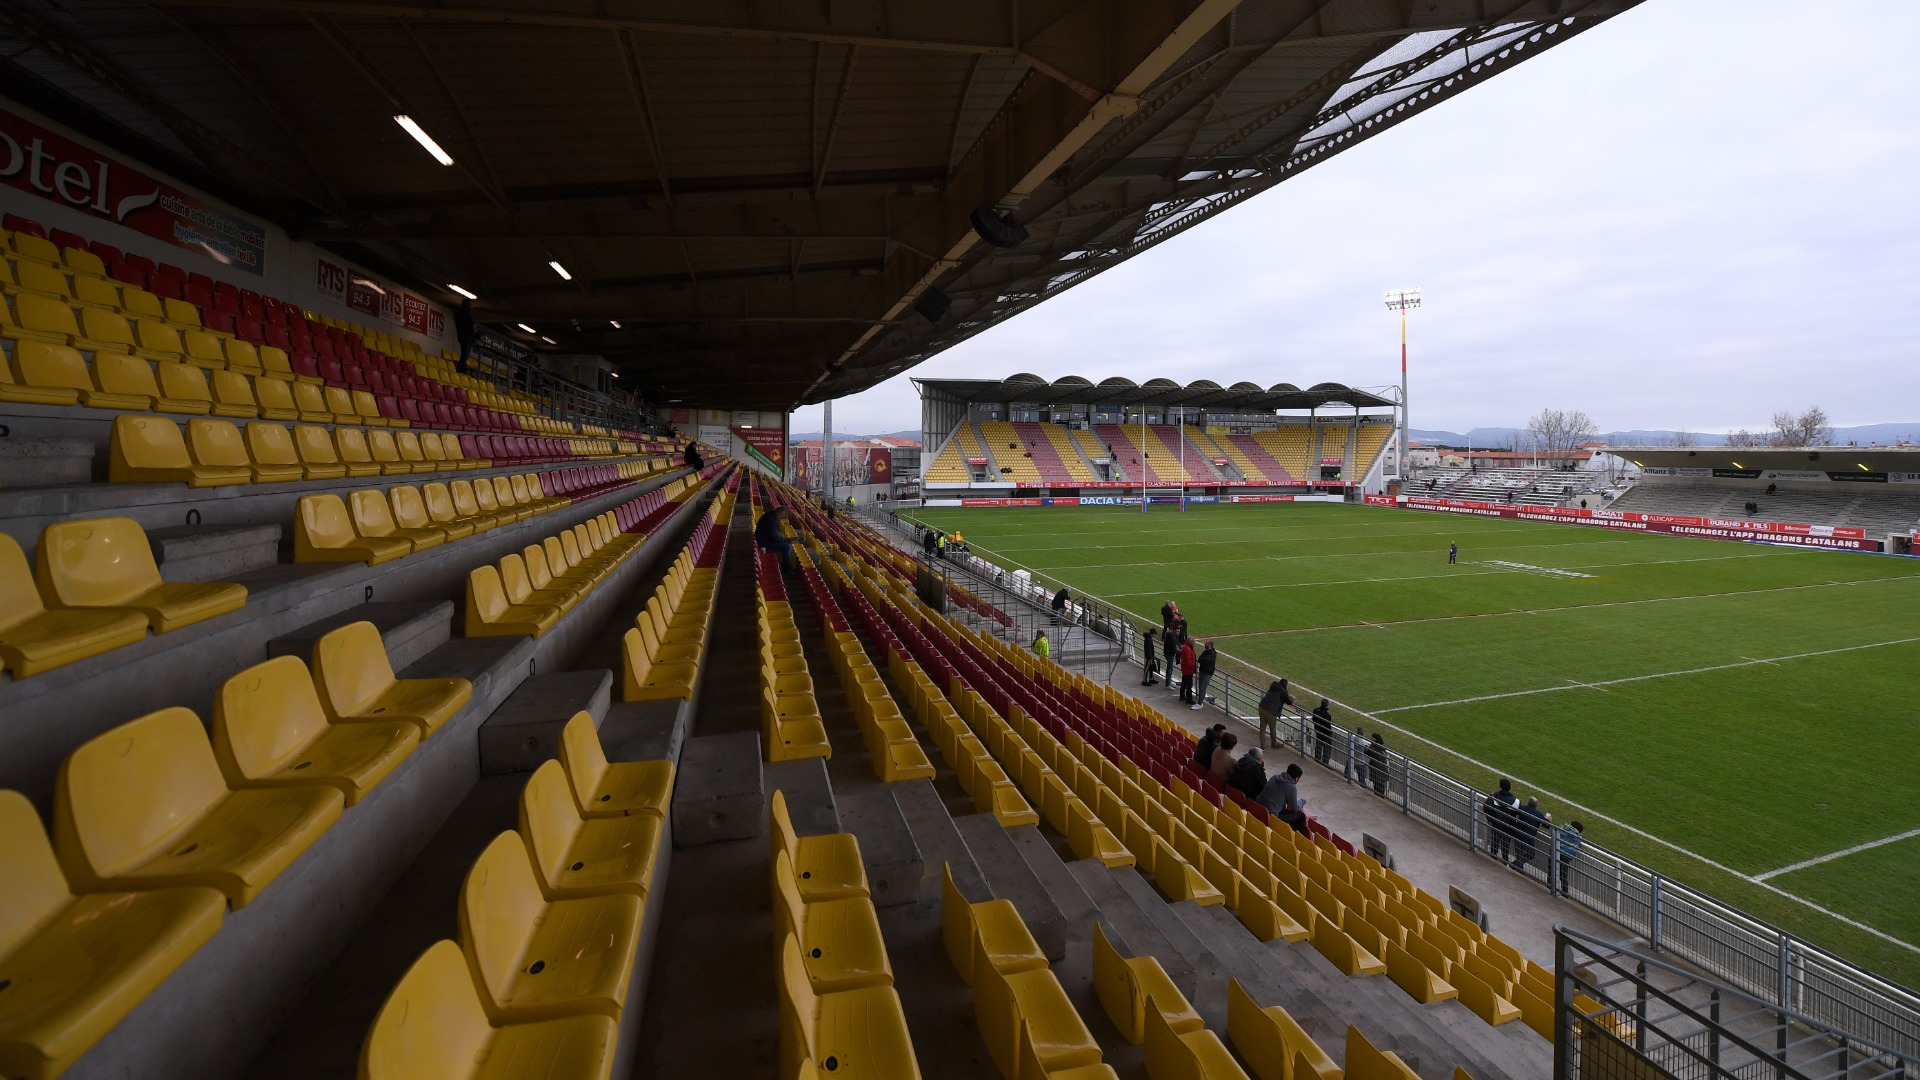 The RFL is investigating claims rainbow flags were removed at a Catalans Dragons game, but the club has clarified its stance.